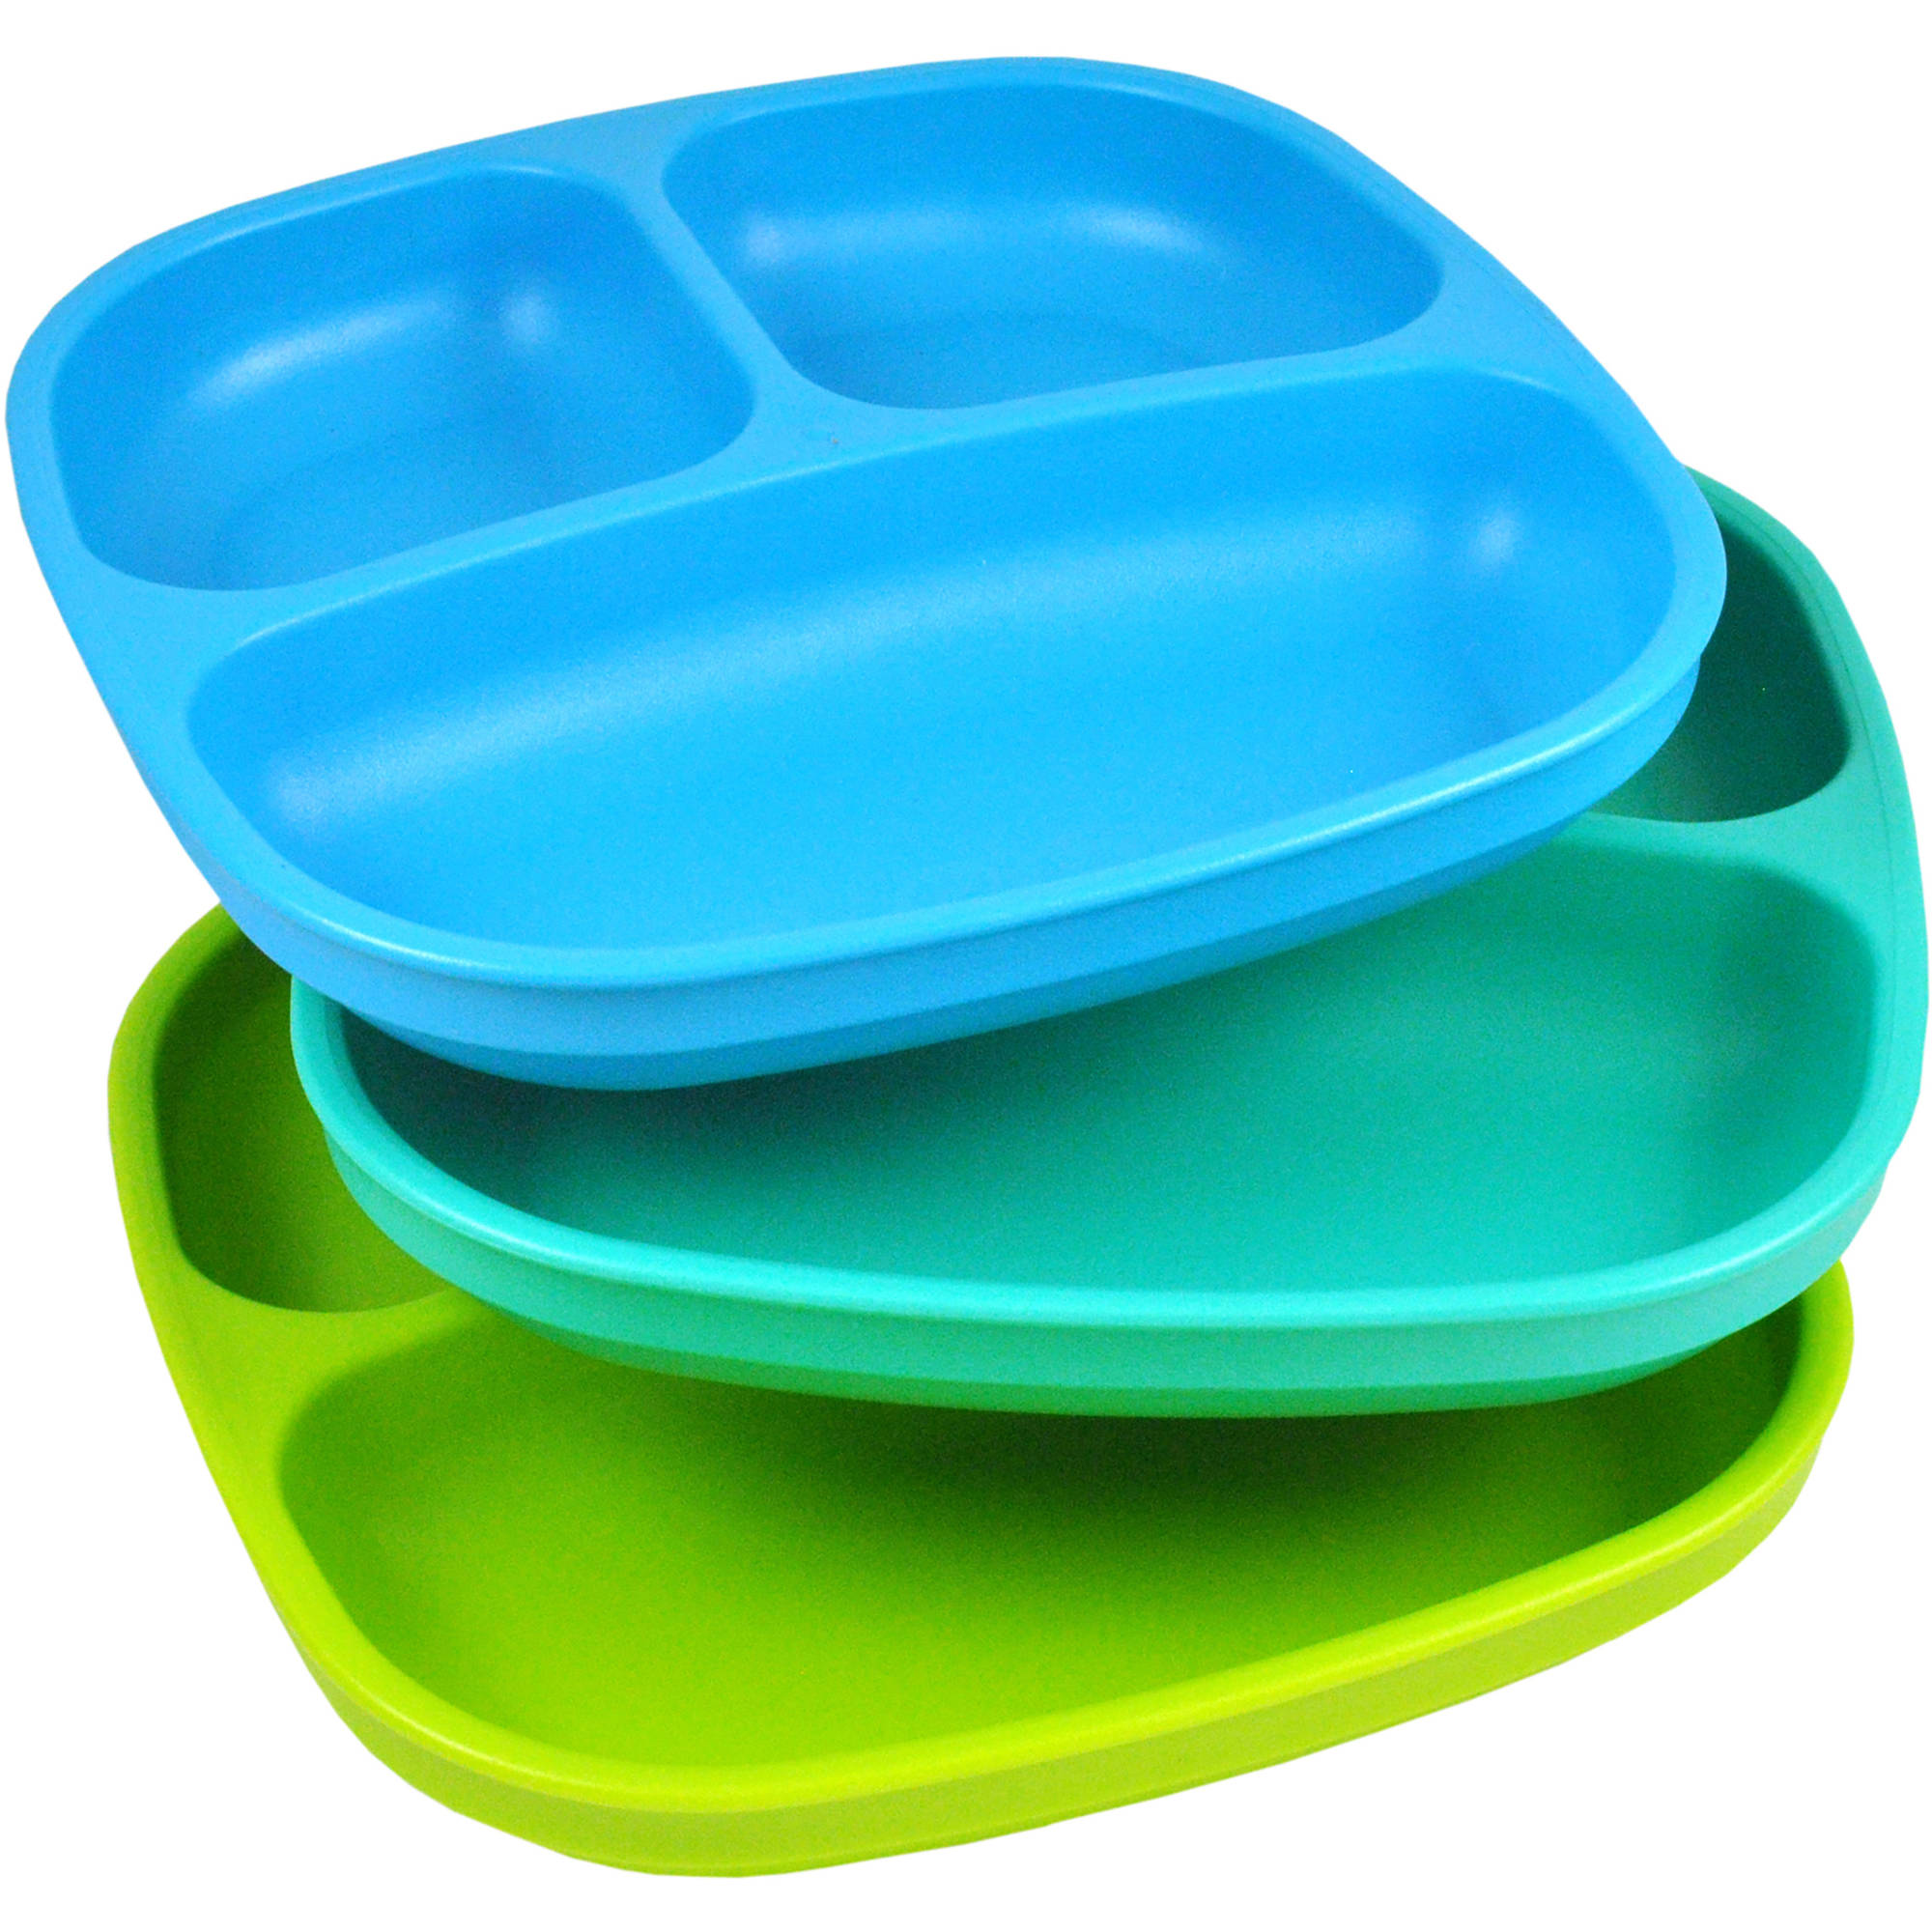 Re-Play 3-Pack Divided Plates, BPA-Free